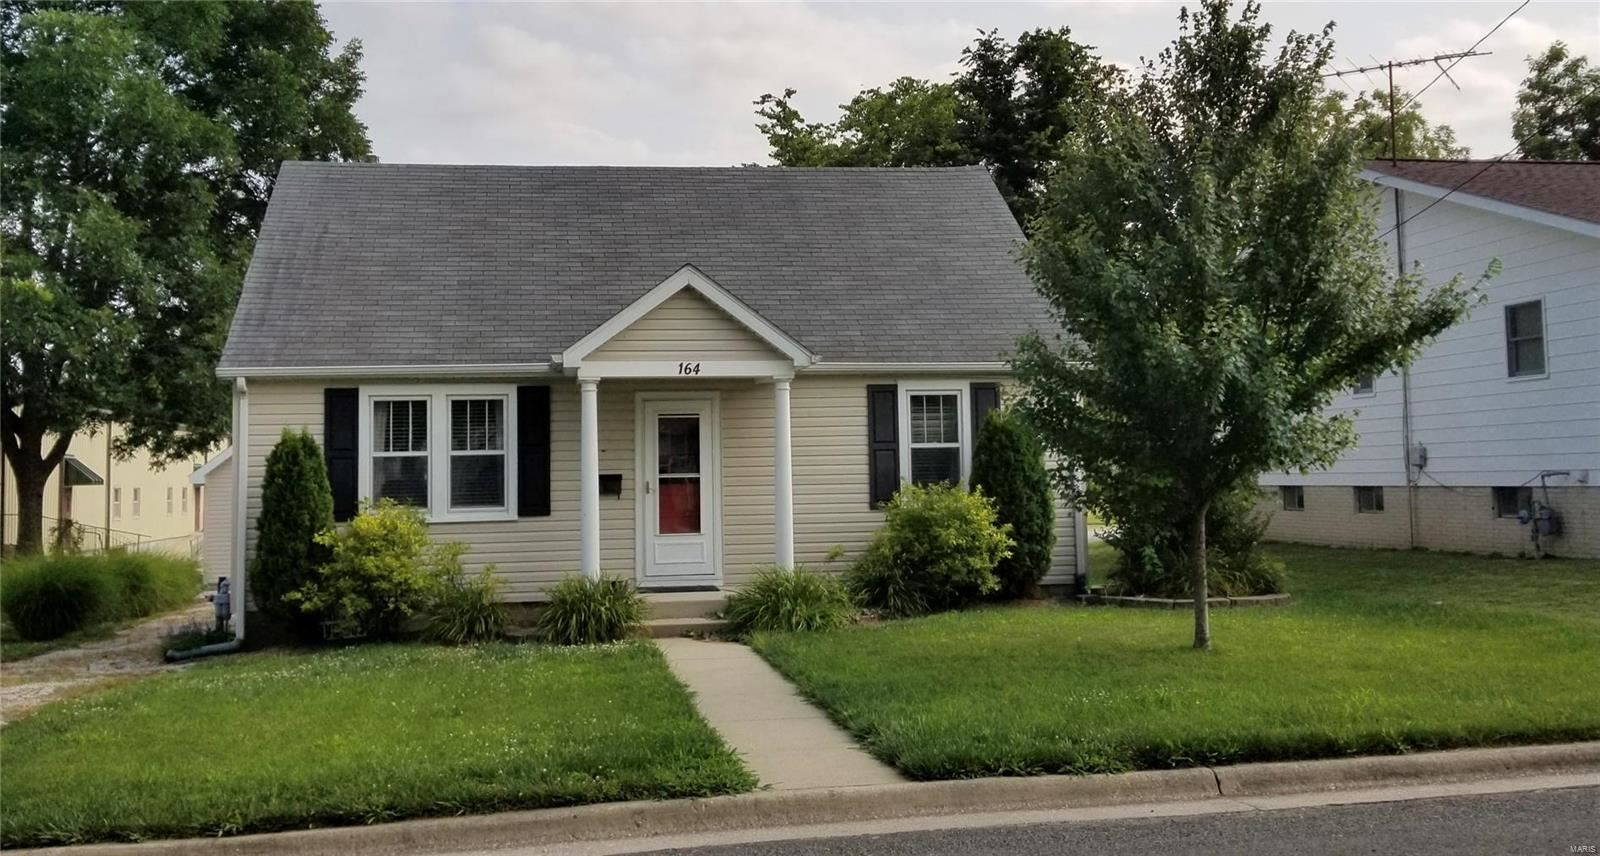 Photo for 164 East Chester, Nashville, IL 62263 (MLS # 21050280)